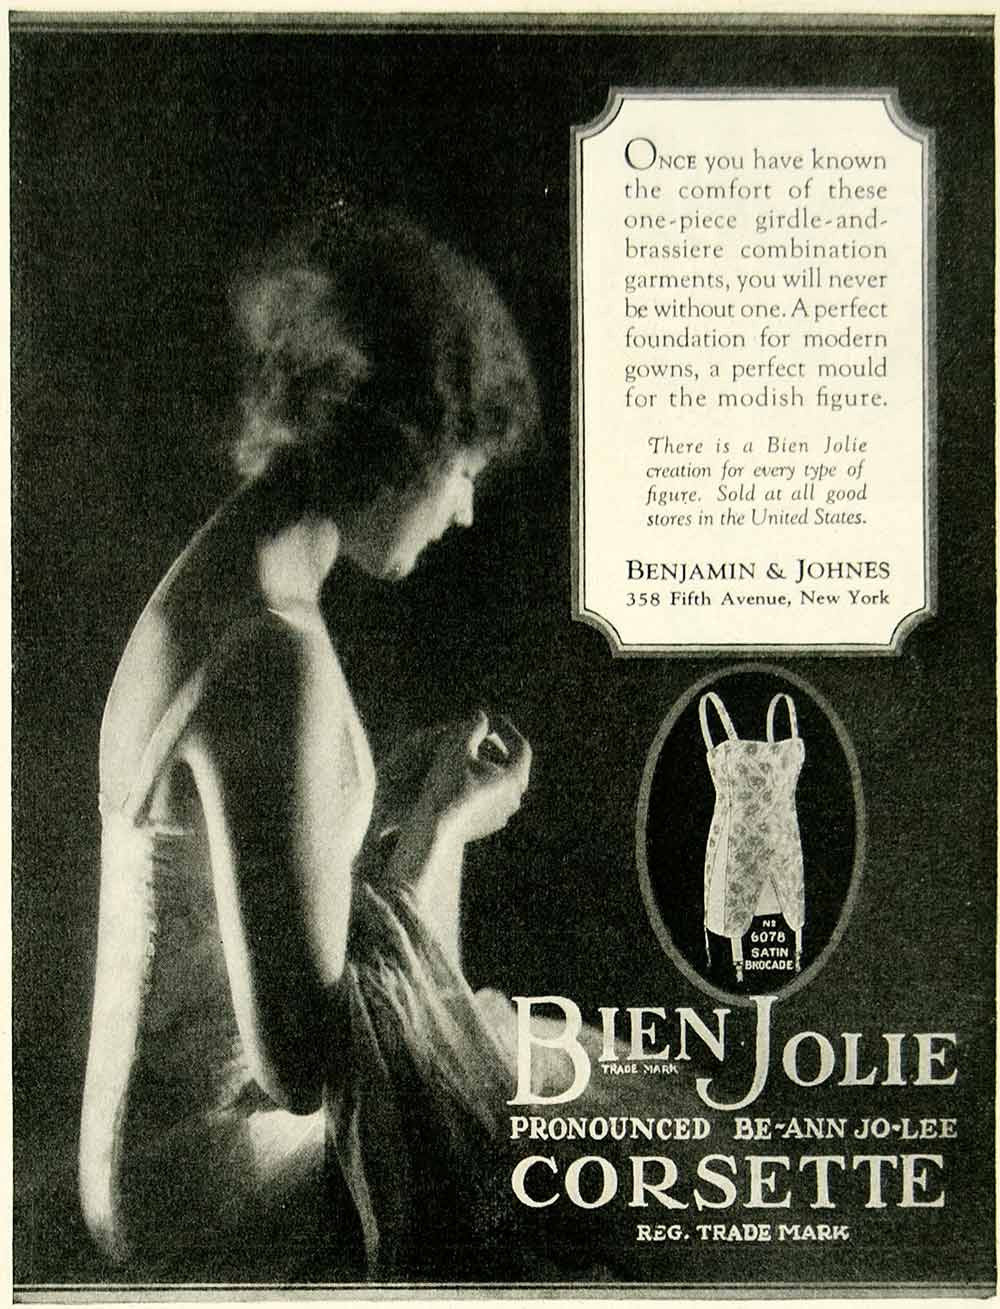 1924 Ad Benjamin & Johnes Bien Jolie Corset 358 Fifth Avenue NYC Womens YDM1